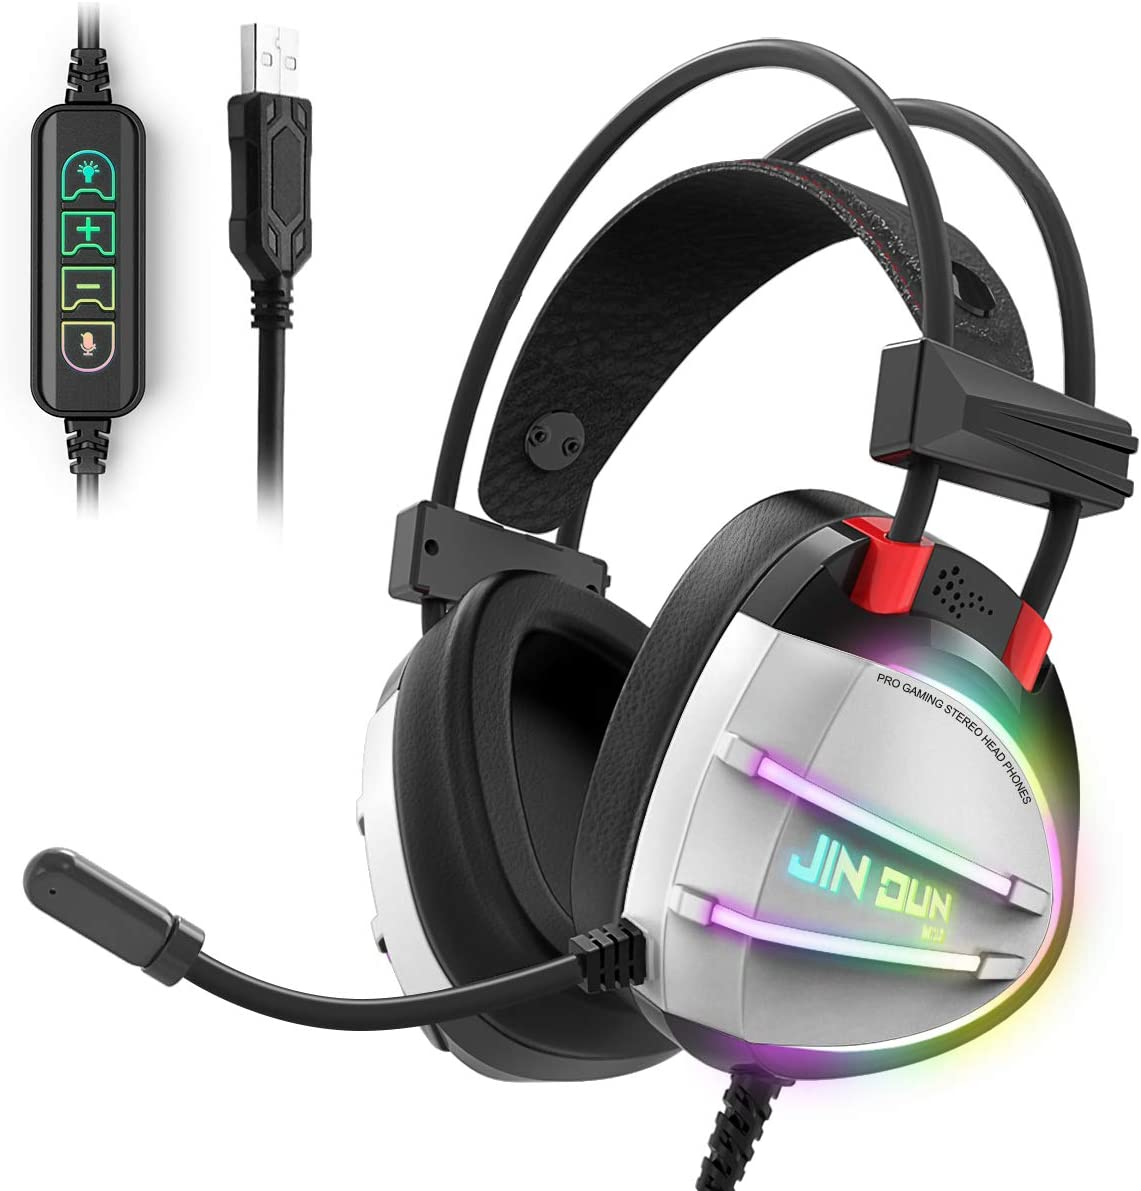 PS4 Gaming Headset, Taotique True 7.1 Surround Sound Headphones with Noise Cancelling Mic, Ergonomic Soft Earmuffs, RGB Lights and in-line Volume Controller USB Computer Headsets for PC Laptop Mac